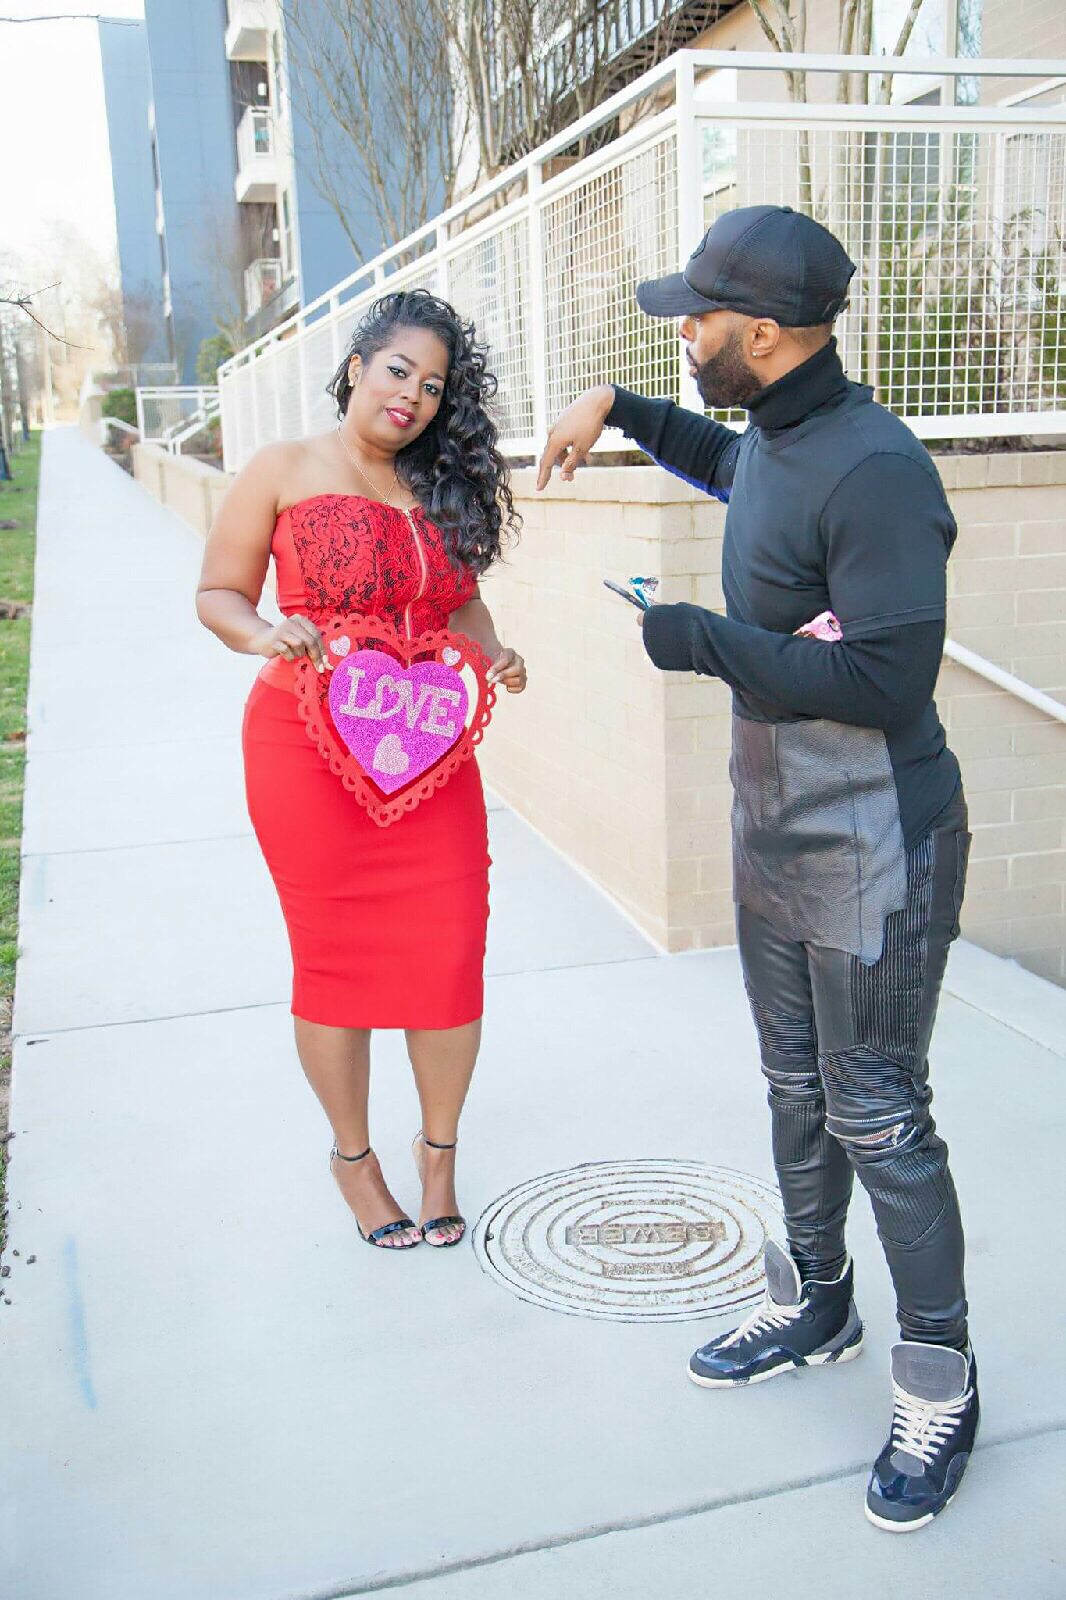 Behind-The-Scenes Valentine's Day Photoshoot For 'Fashion To Figure' Blog Giveaway